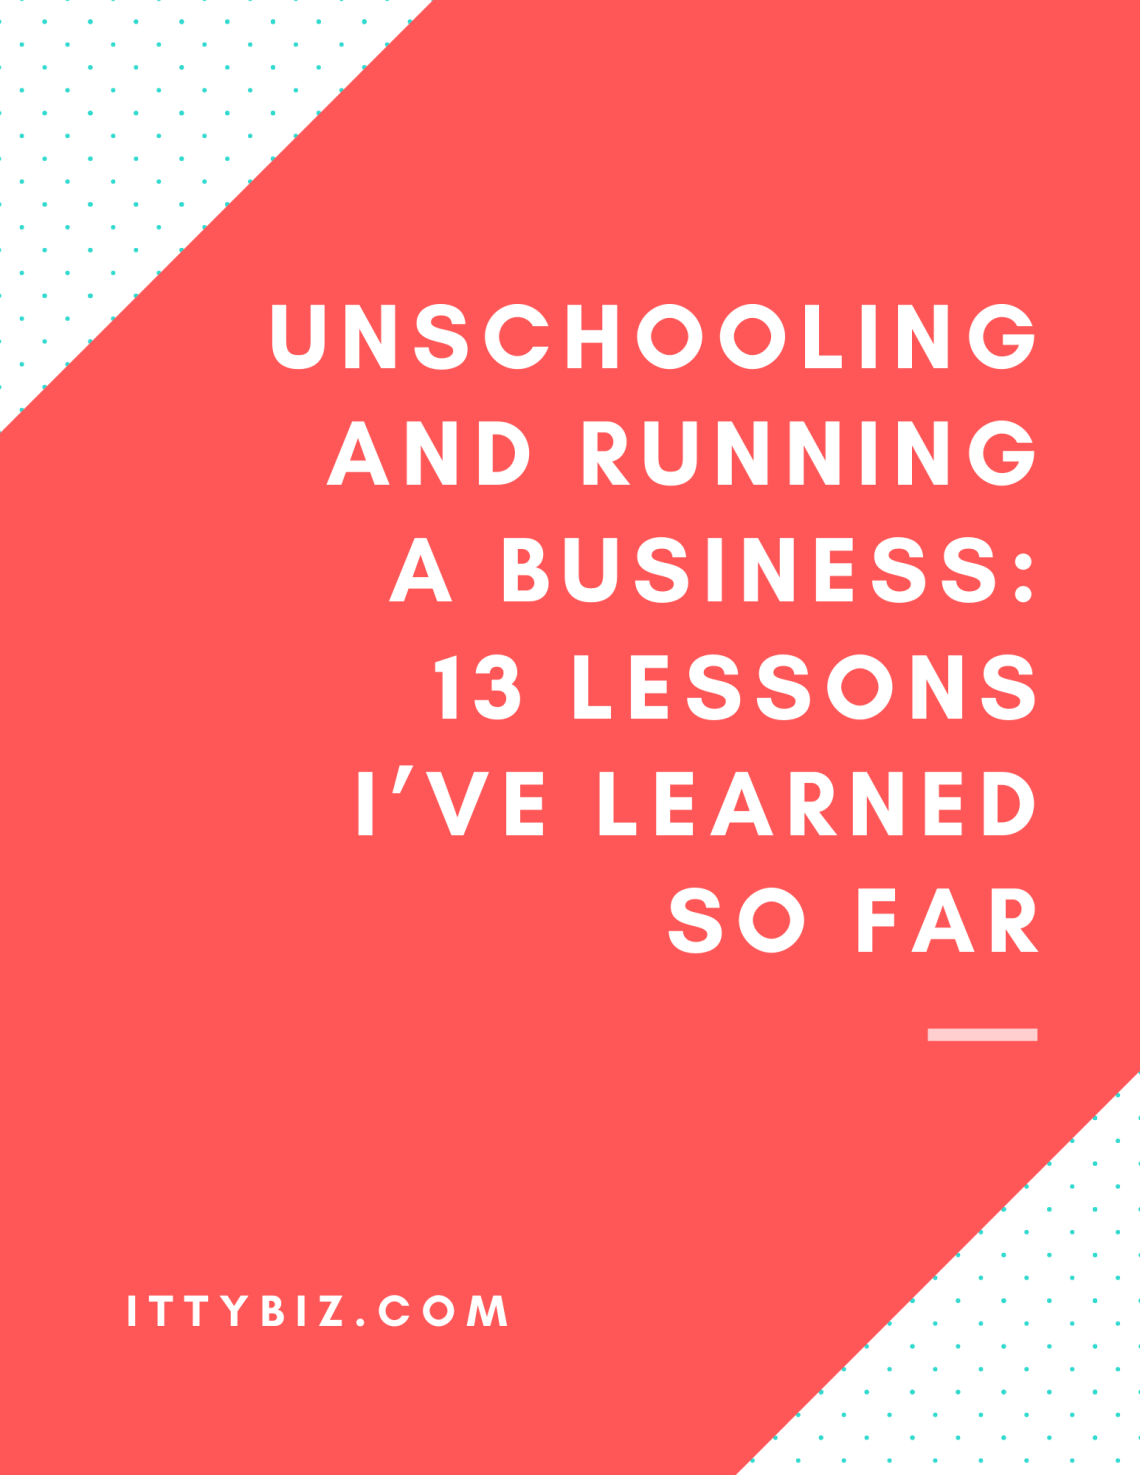 Unschooling and Running A Business: 13 Lessons I've Learned So Far